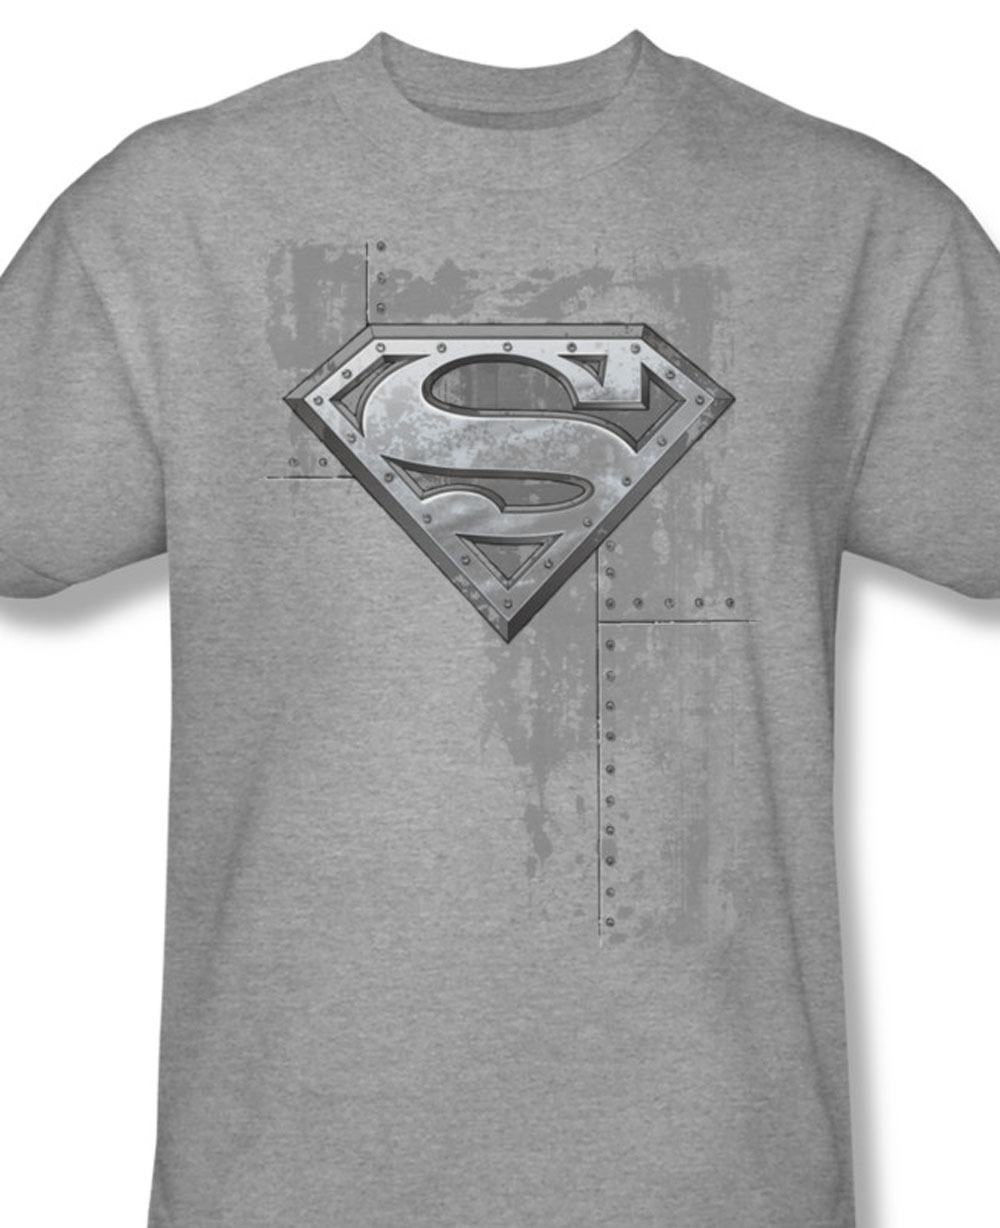 56d8bbe3294f3 Superman T Shirts For Sale - DREAMWORKS